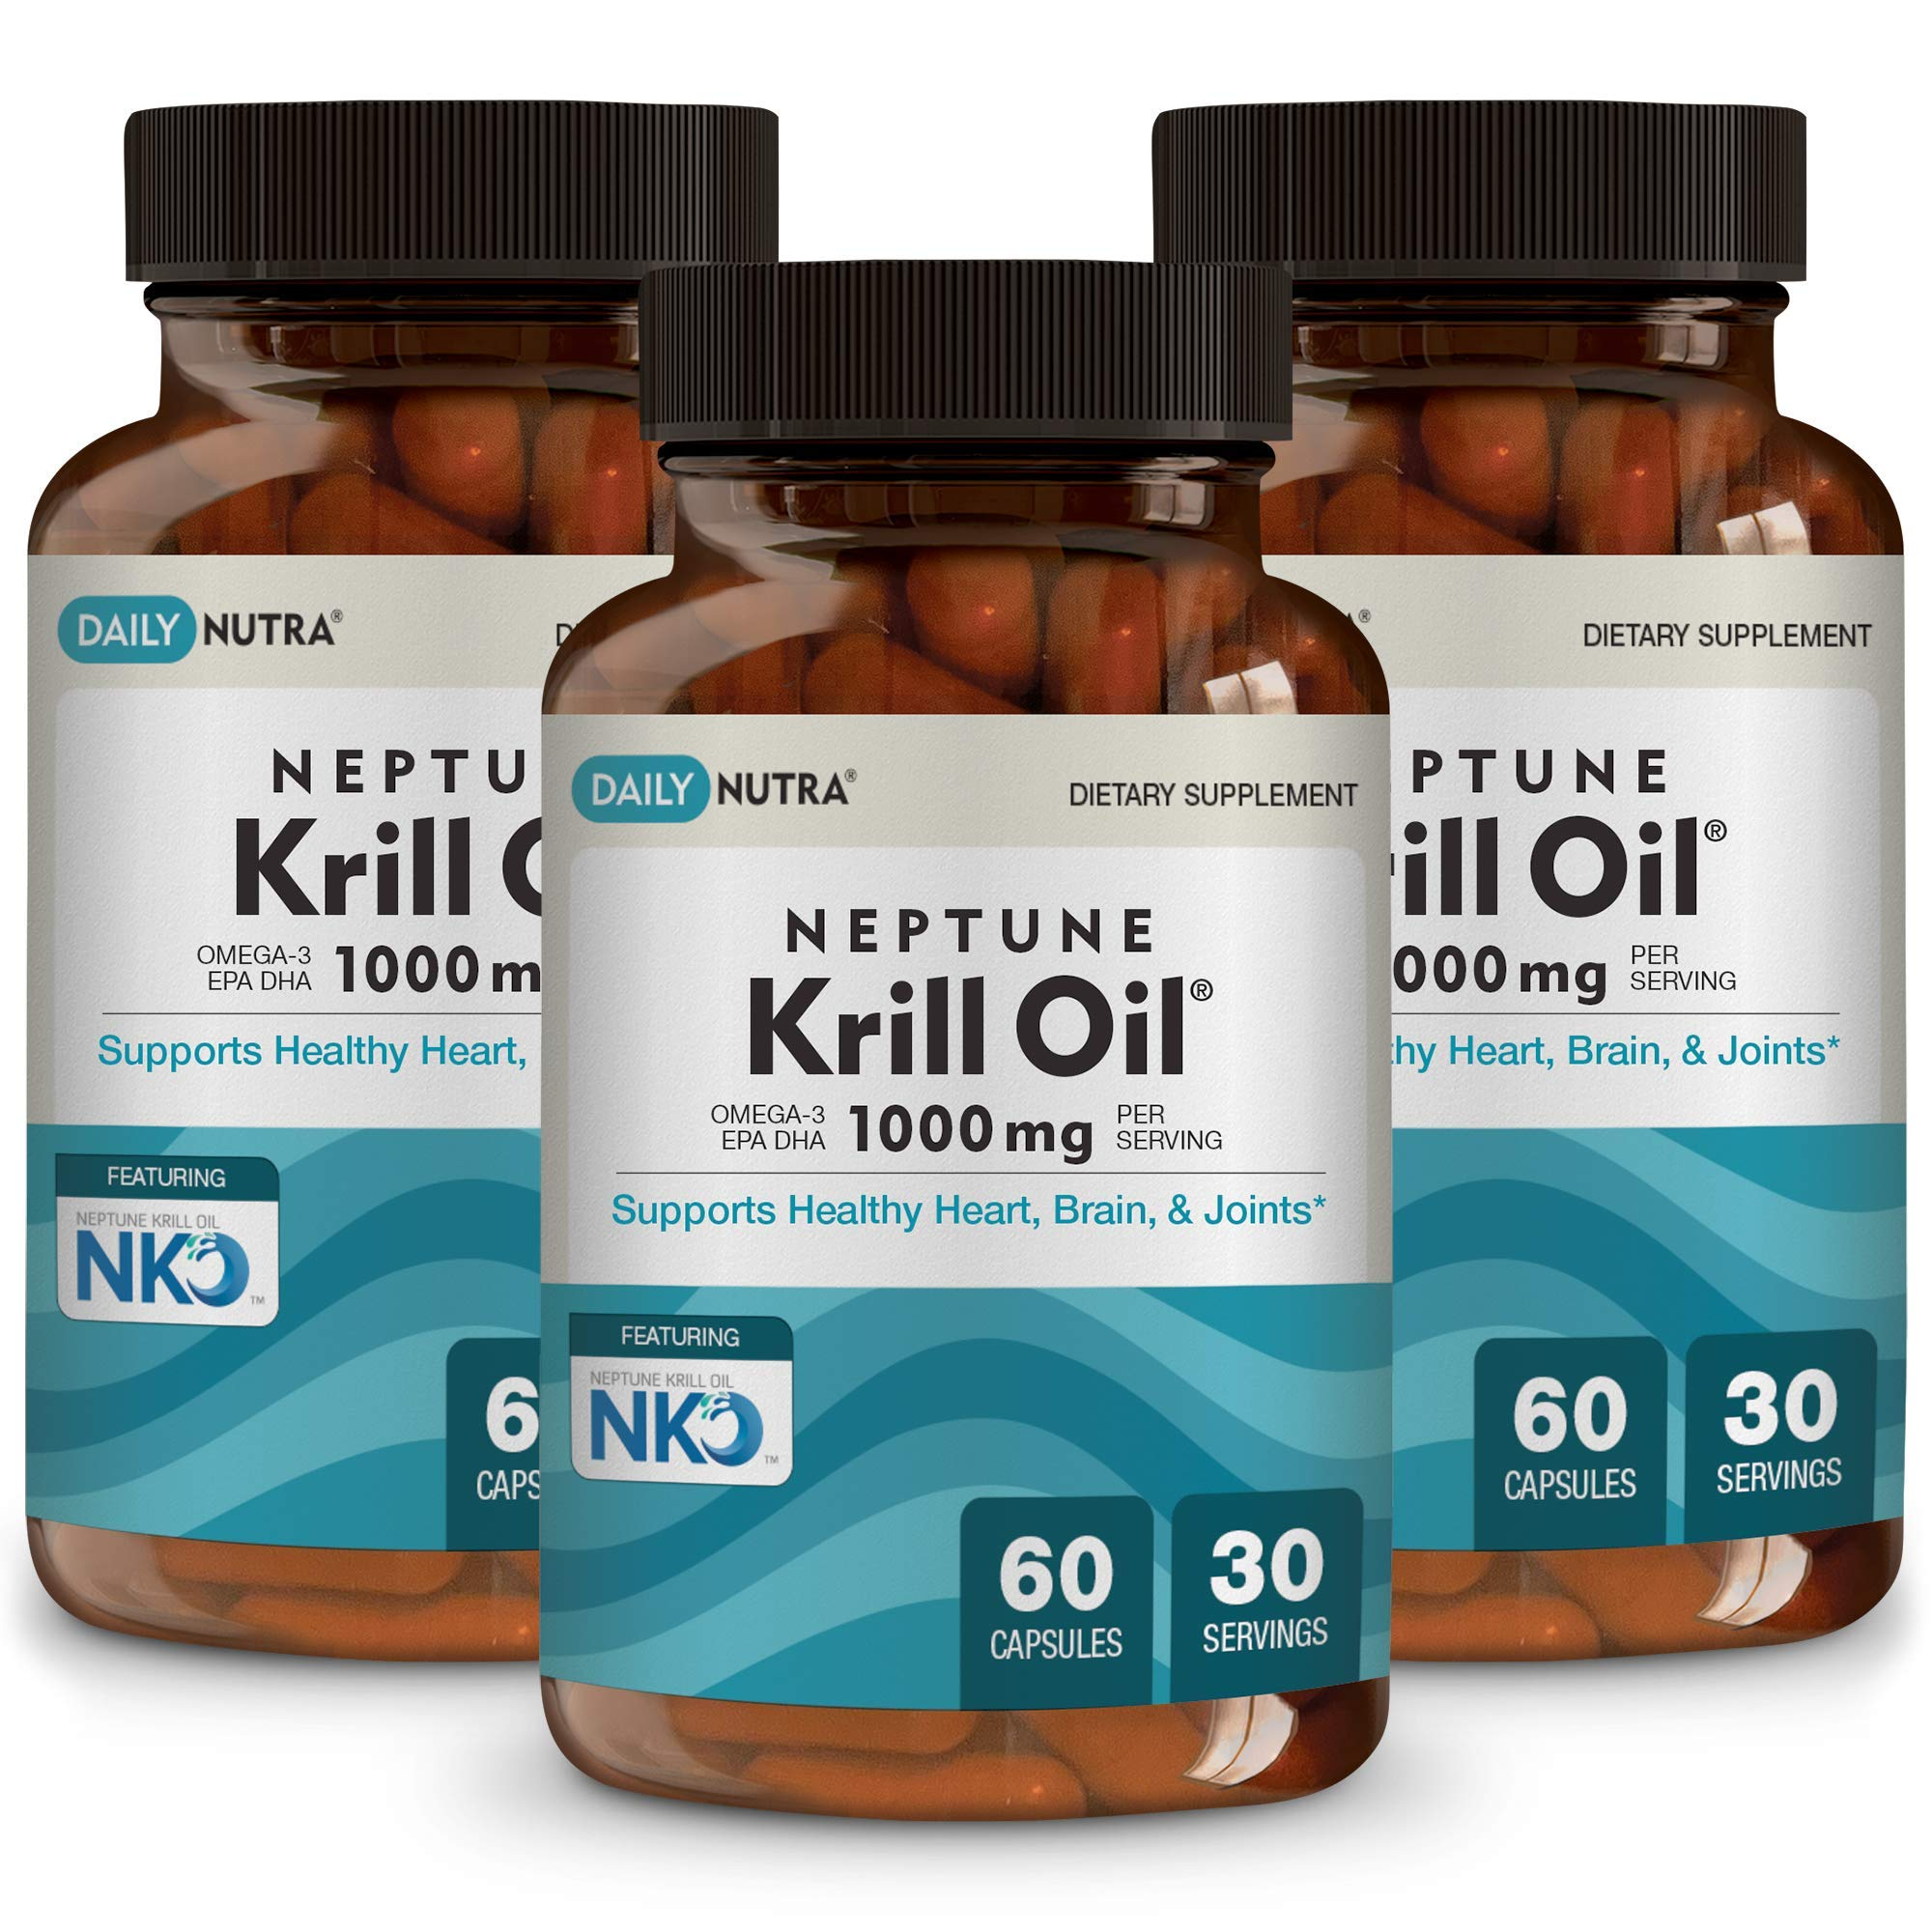 Neptune Krill Oil 1000mg High Absorption Omega-3 EPA DHA & Astaxanthin. Pure and Sustainable. Clinically Shown to Supports Healthy Heart, Brain and Joints (3-Pack, 90 Total Servings) by DailyNutra